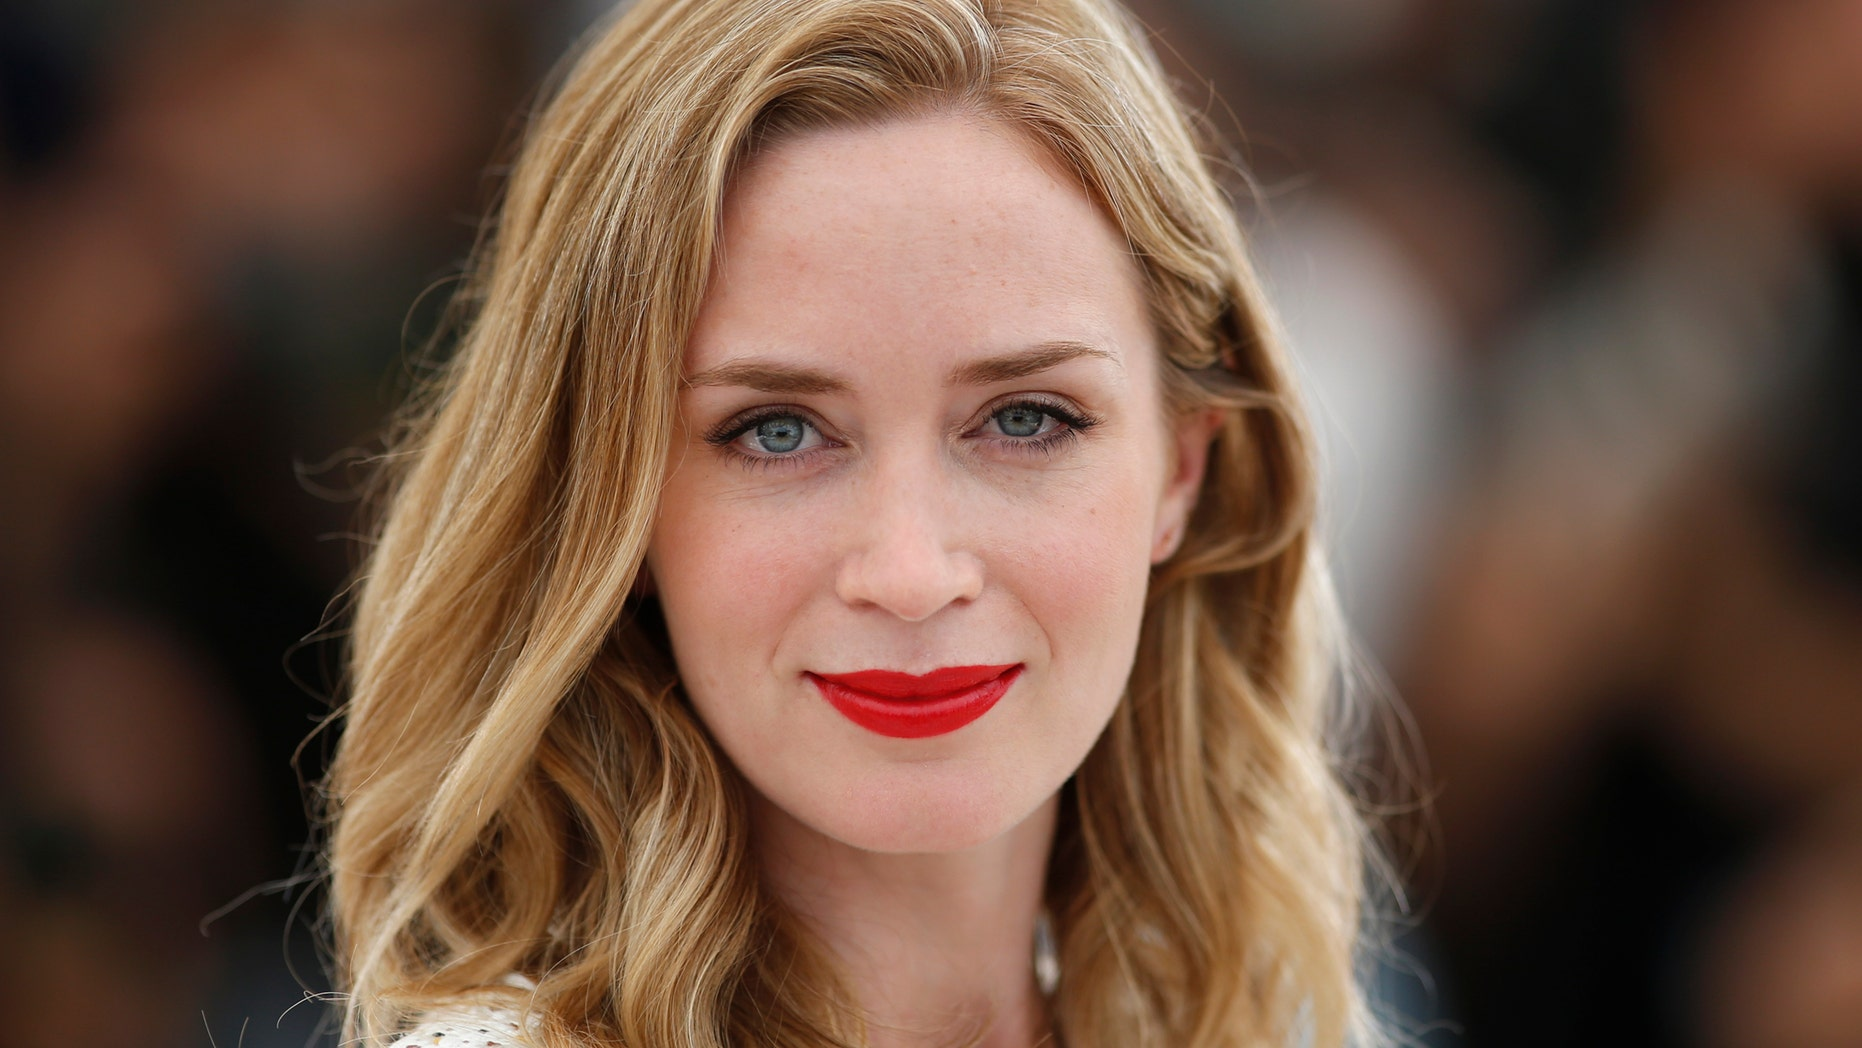 """Cast member Emily Blunt poses during a photocall for the film """"Sicario"""" in competition at the 68th Cannes Film Festival in Cannes, southern France, May 19, 2015. REUTERS"""